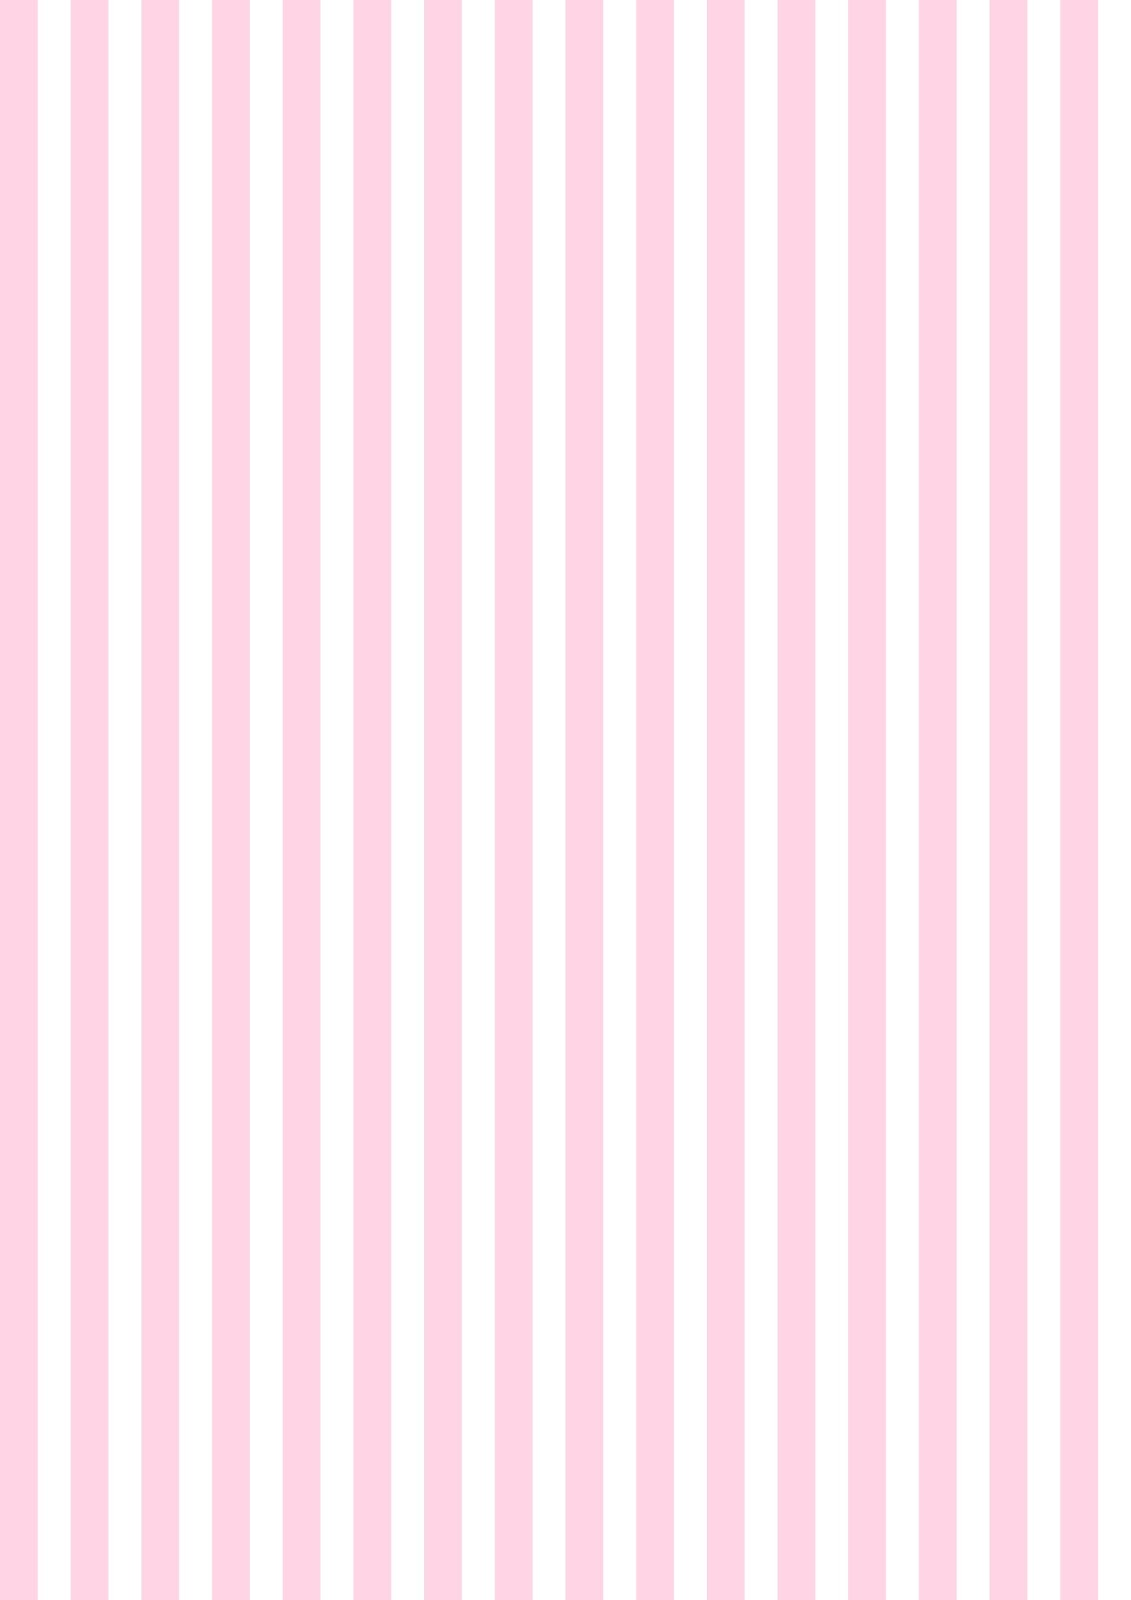 Pink And White Bedroom: Free Digital Striped Scrapbooking Paper